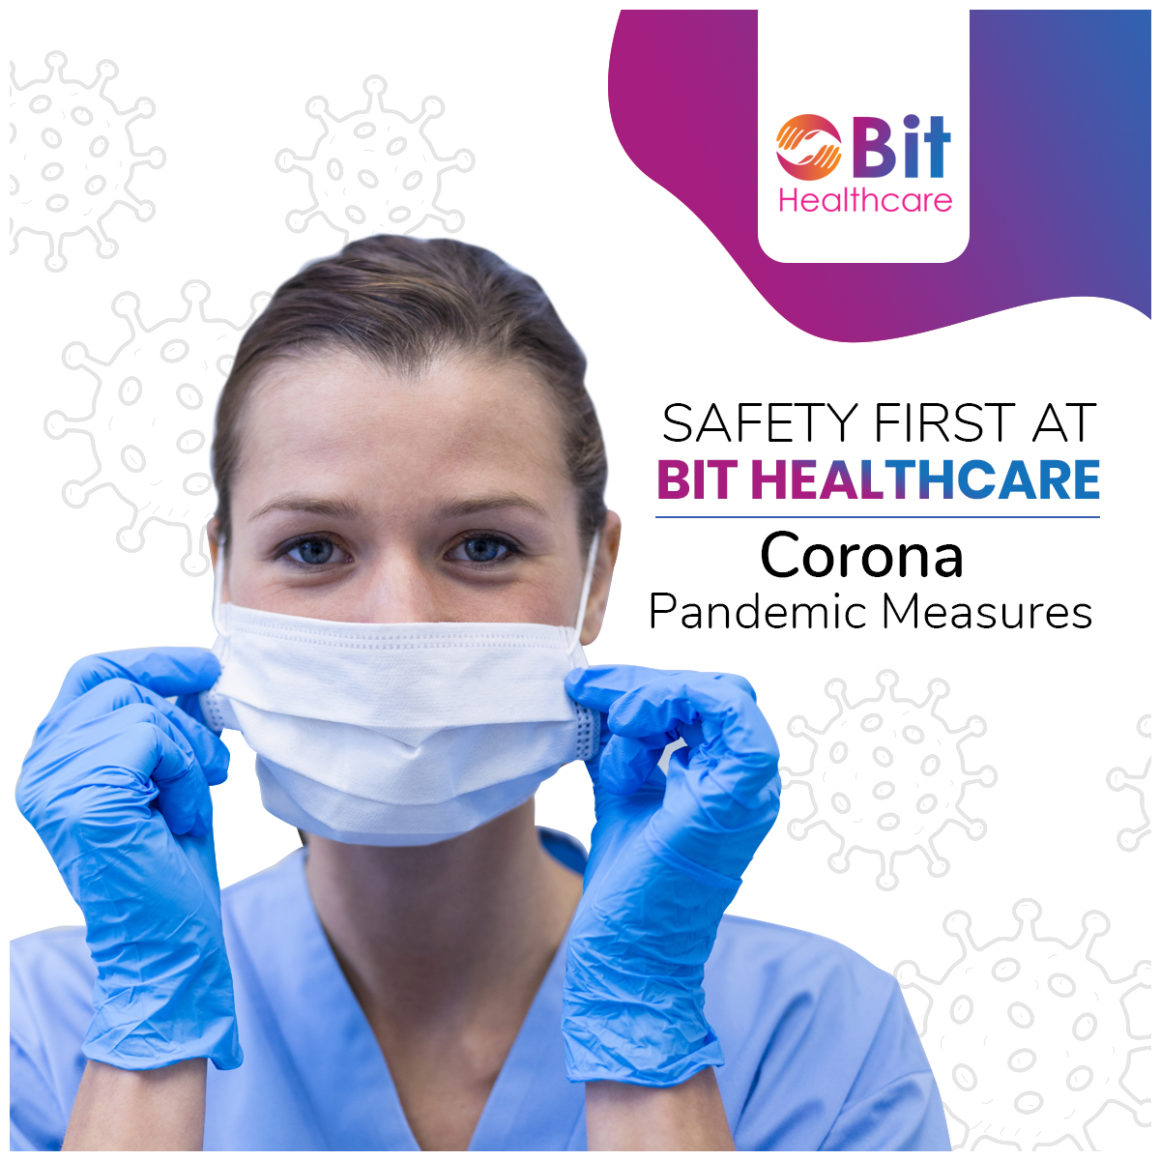 SAFETY FIRST AT BIT HEALTHCARE